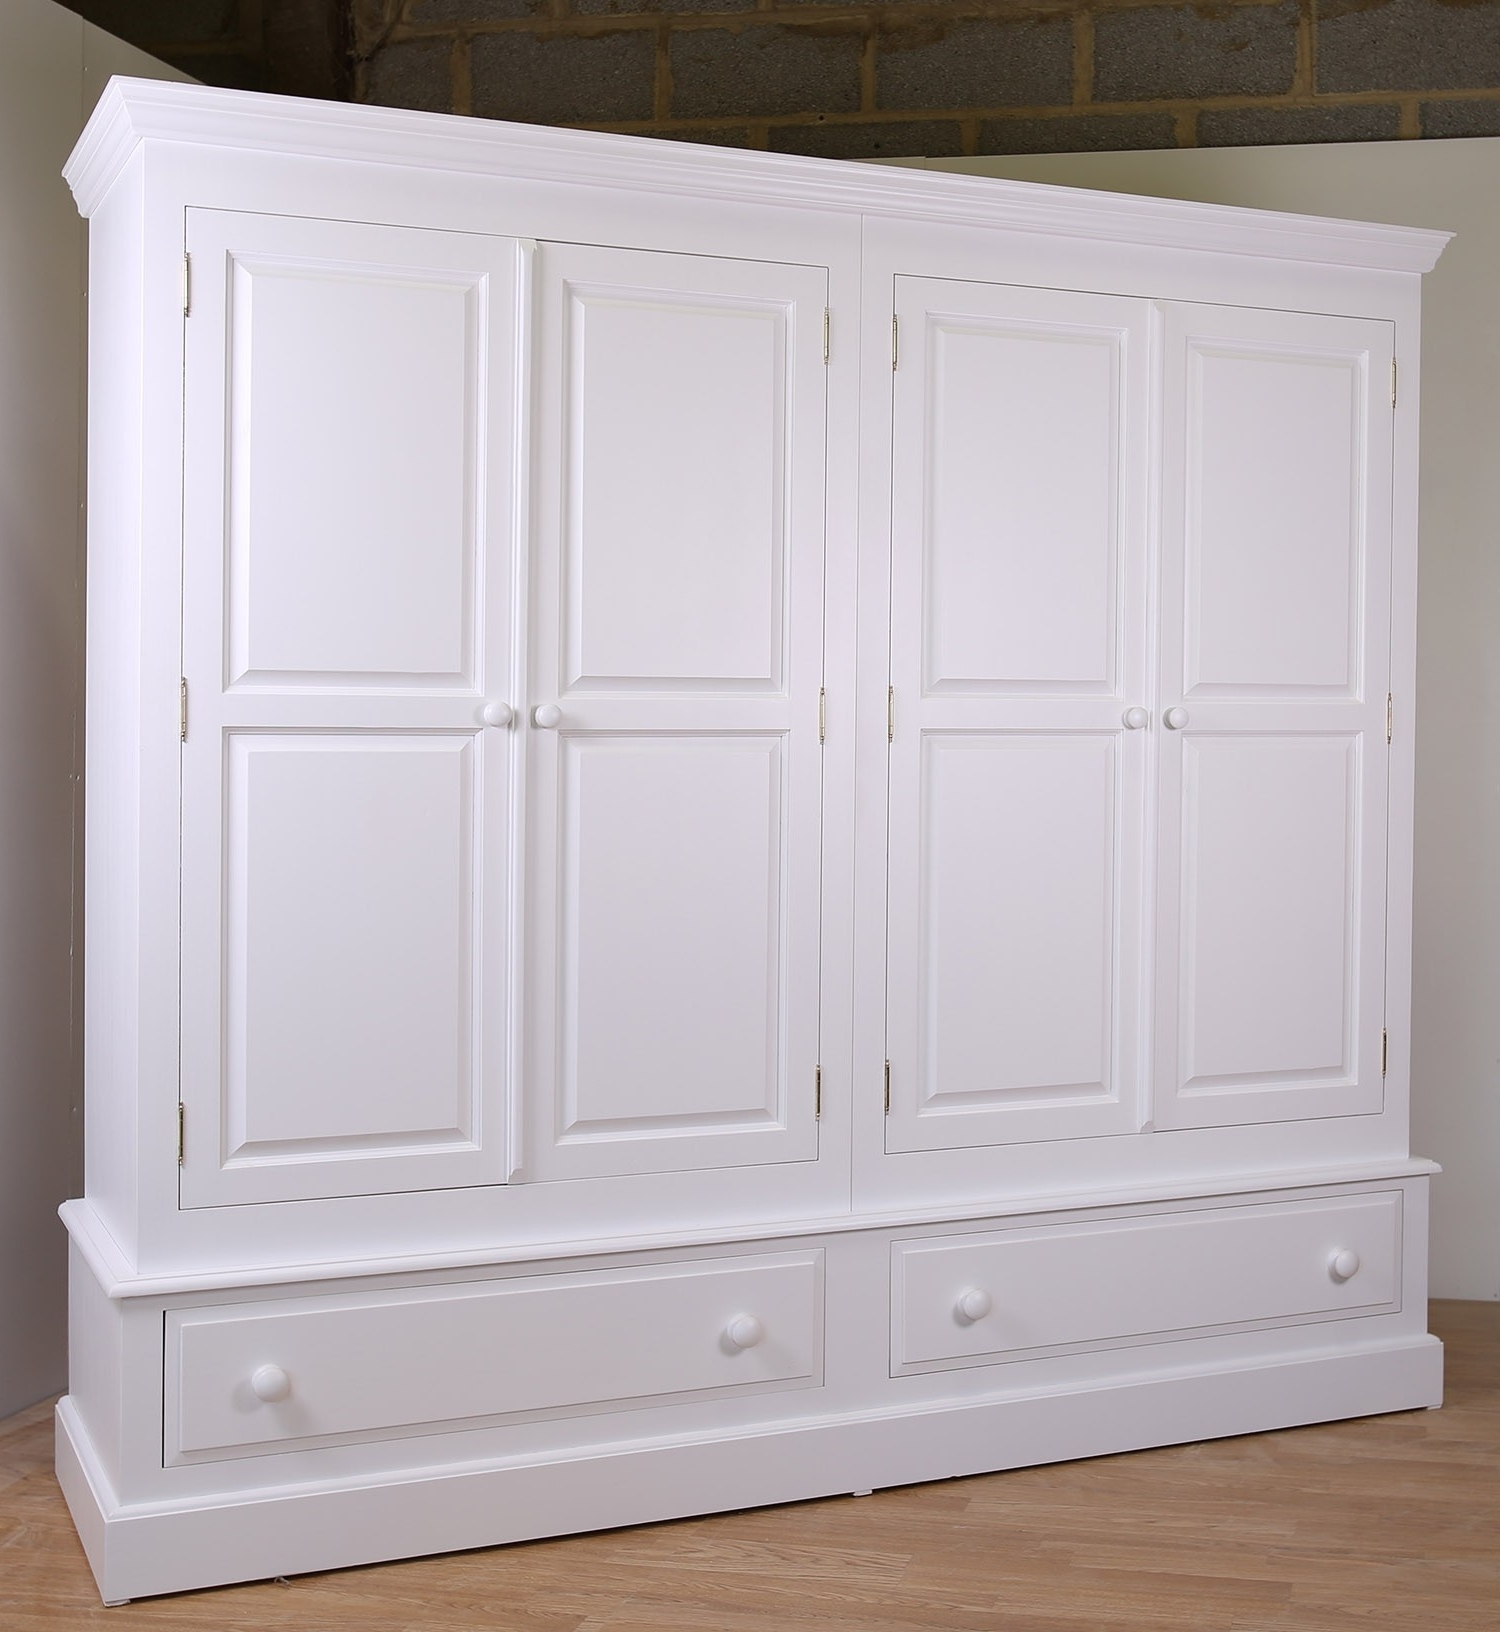 Ikea Wardrobe Event 2019 15 Ideas Of Large White Wardrobes With Drawers